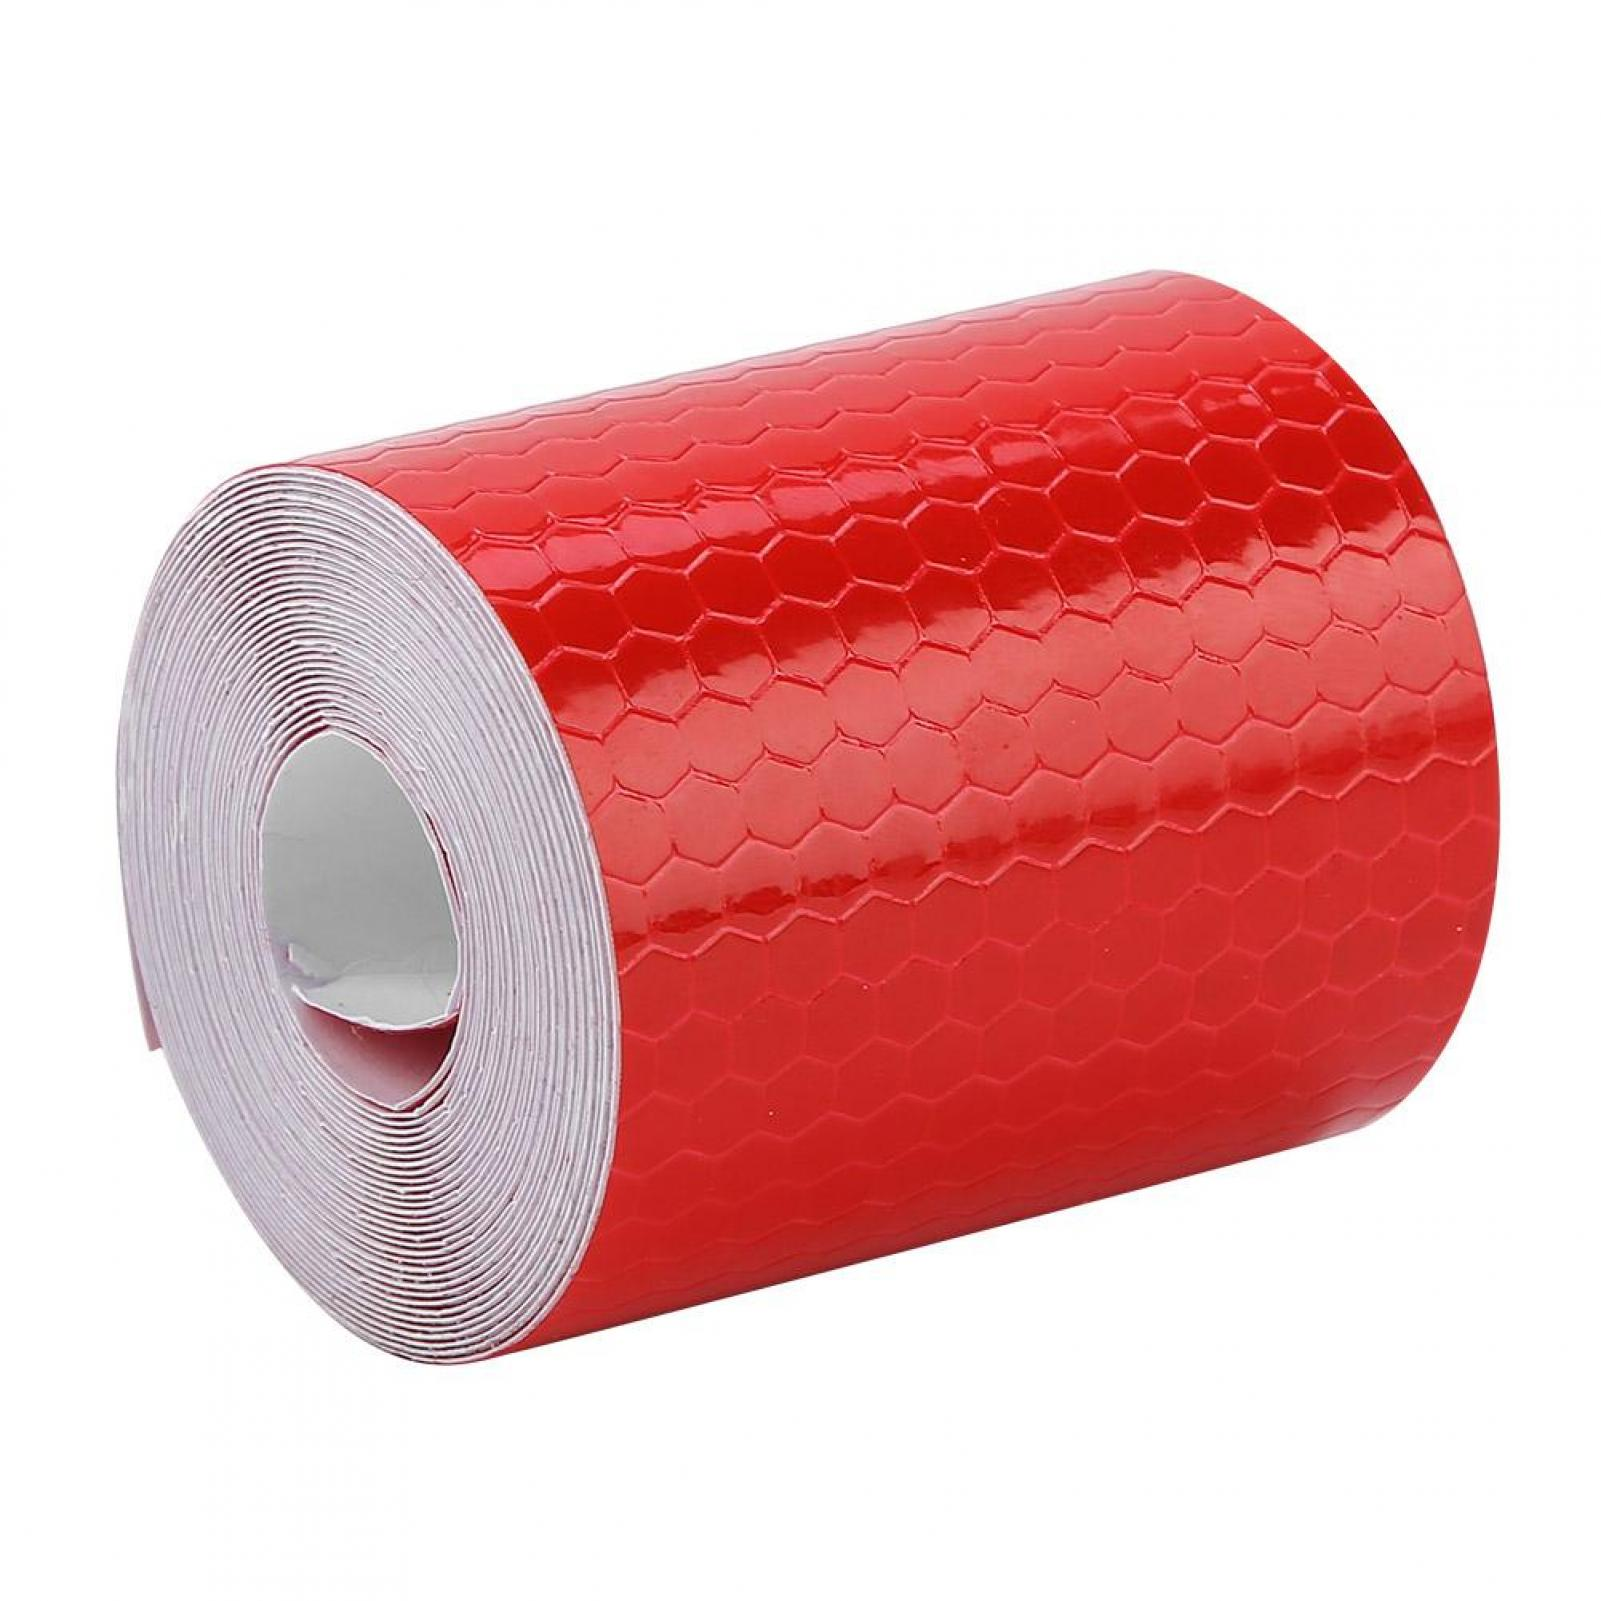 5cm x 3m Safety Adhesive Reflective Tape Roll Sticker For ...